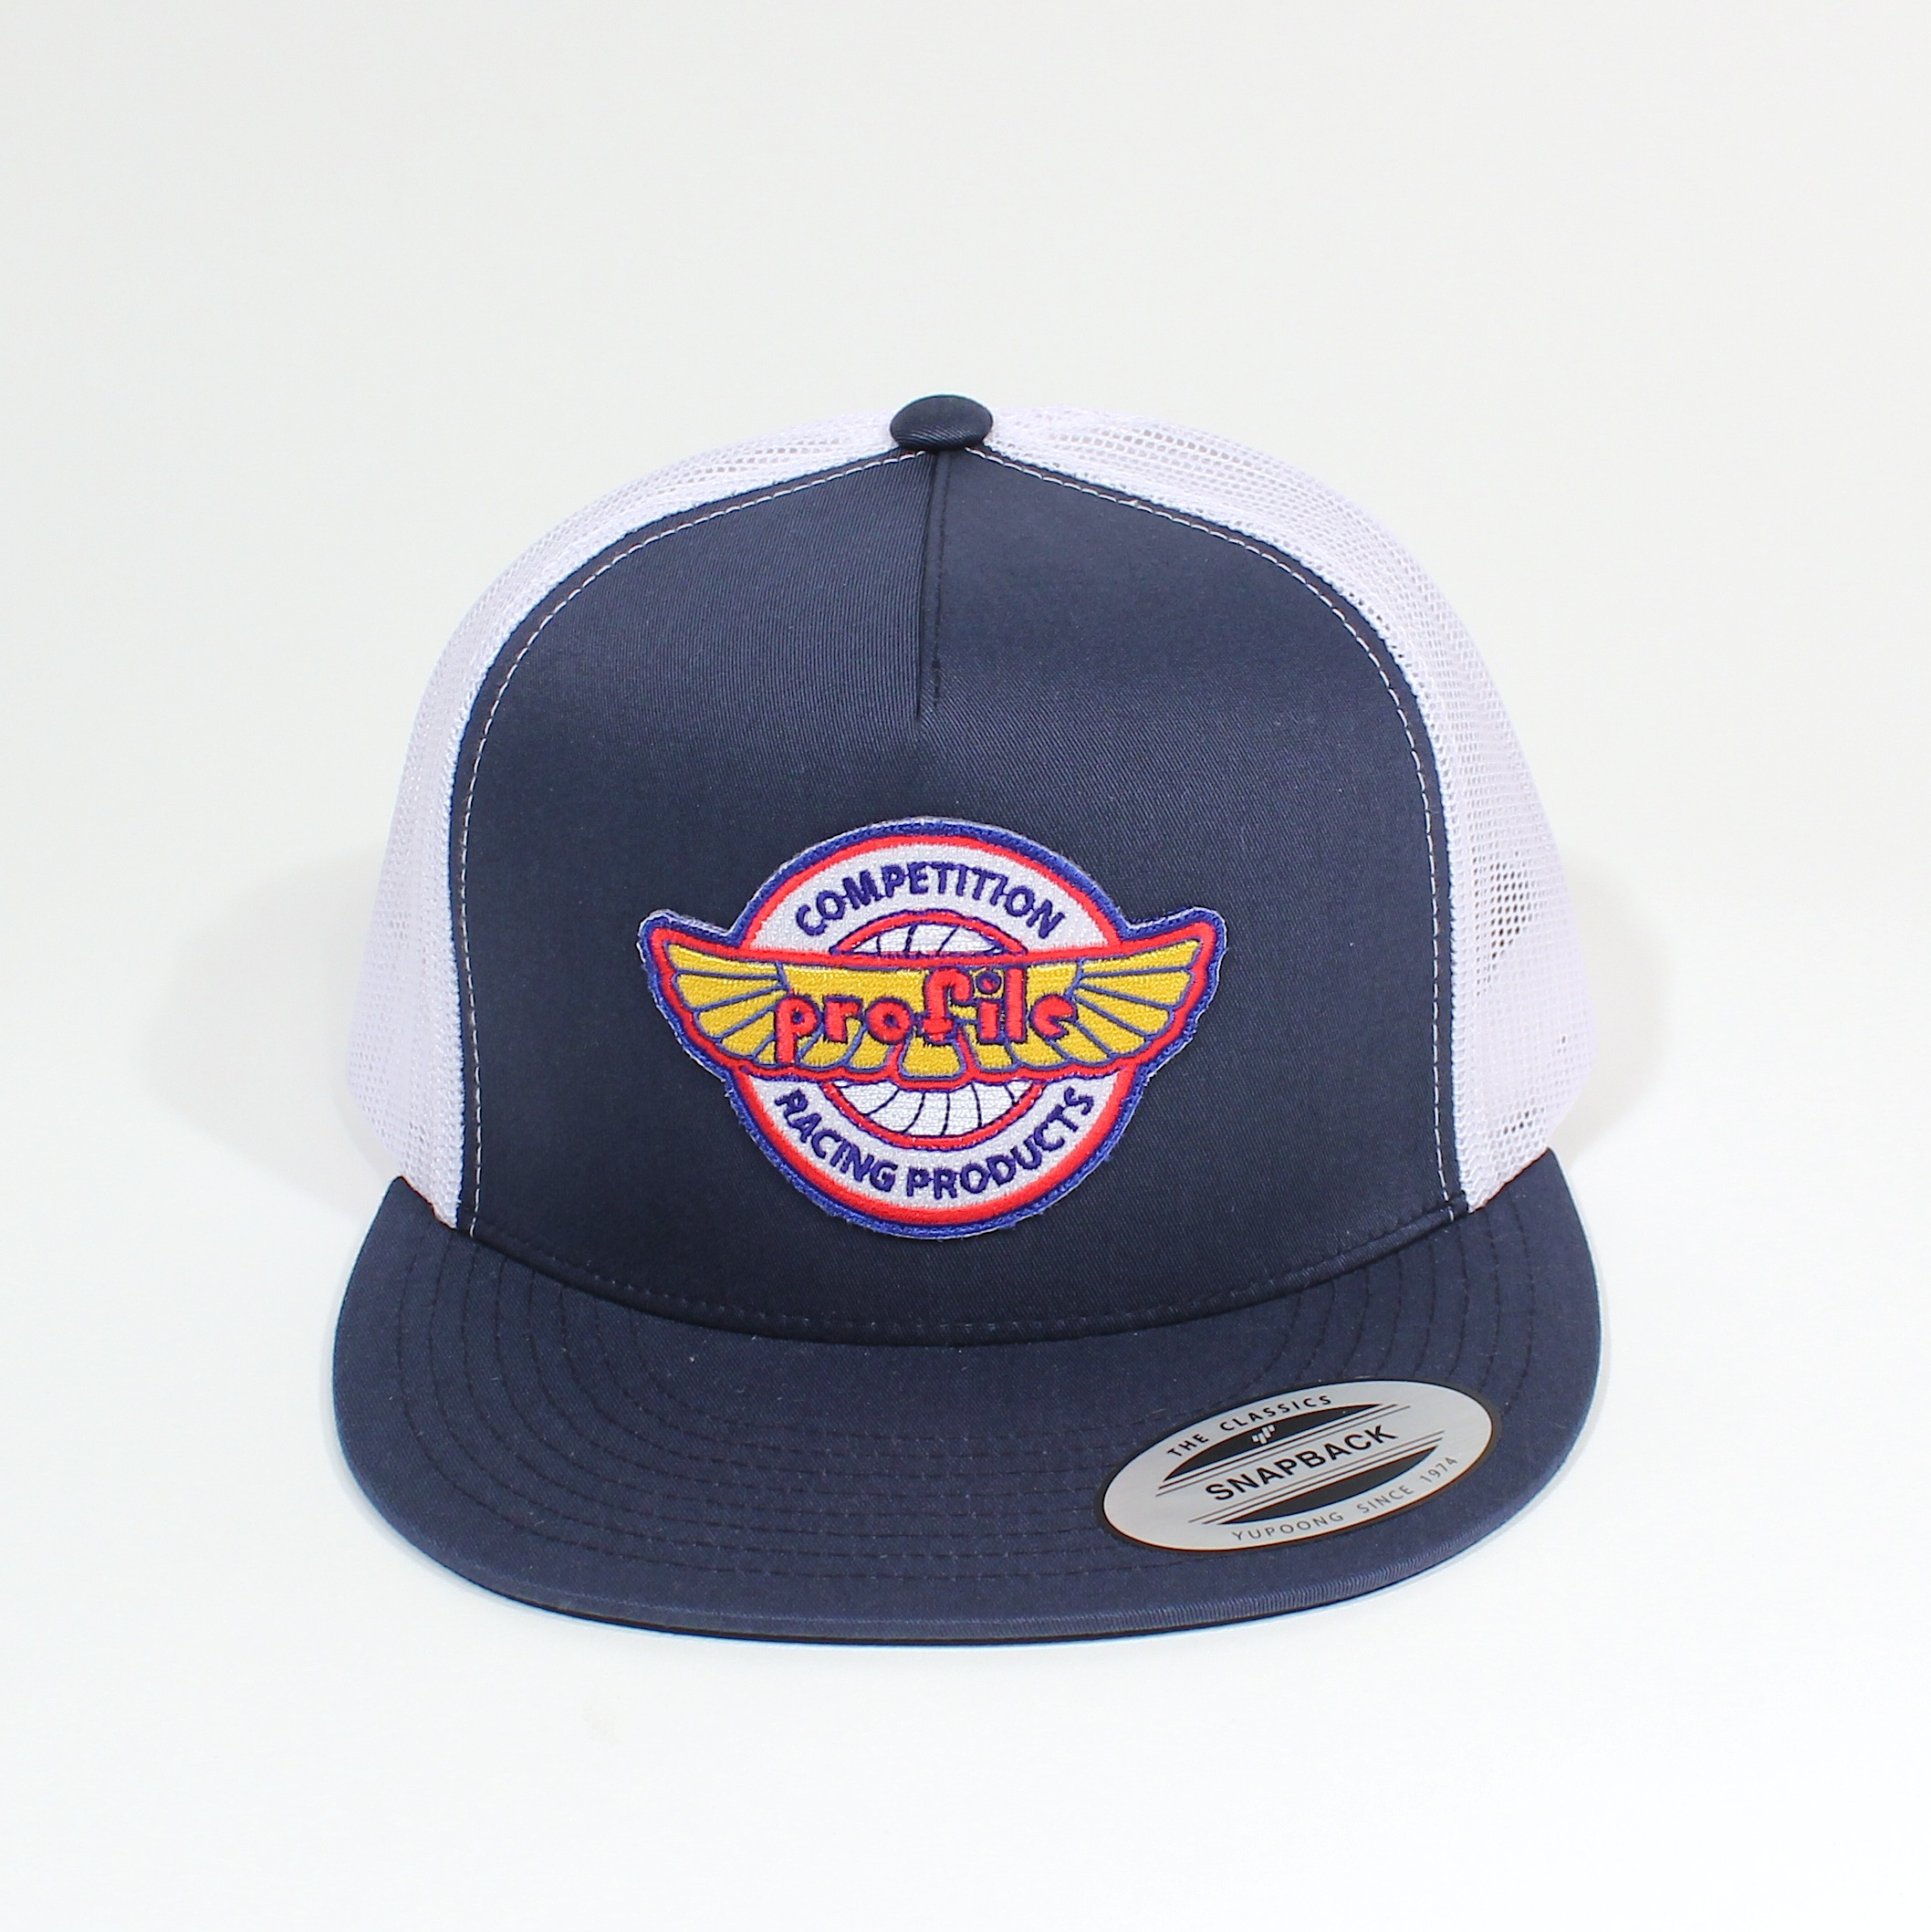 VINTAGE LOGO MESH TRUCKER HAT – Profile Racing a3d7030b24a9